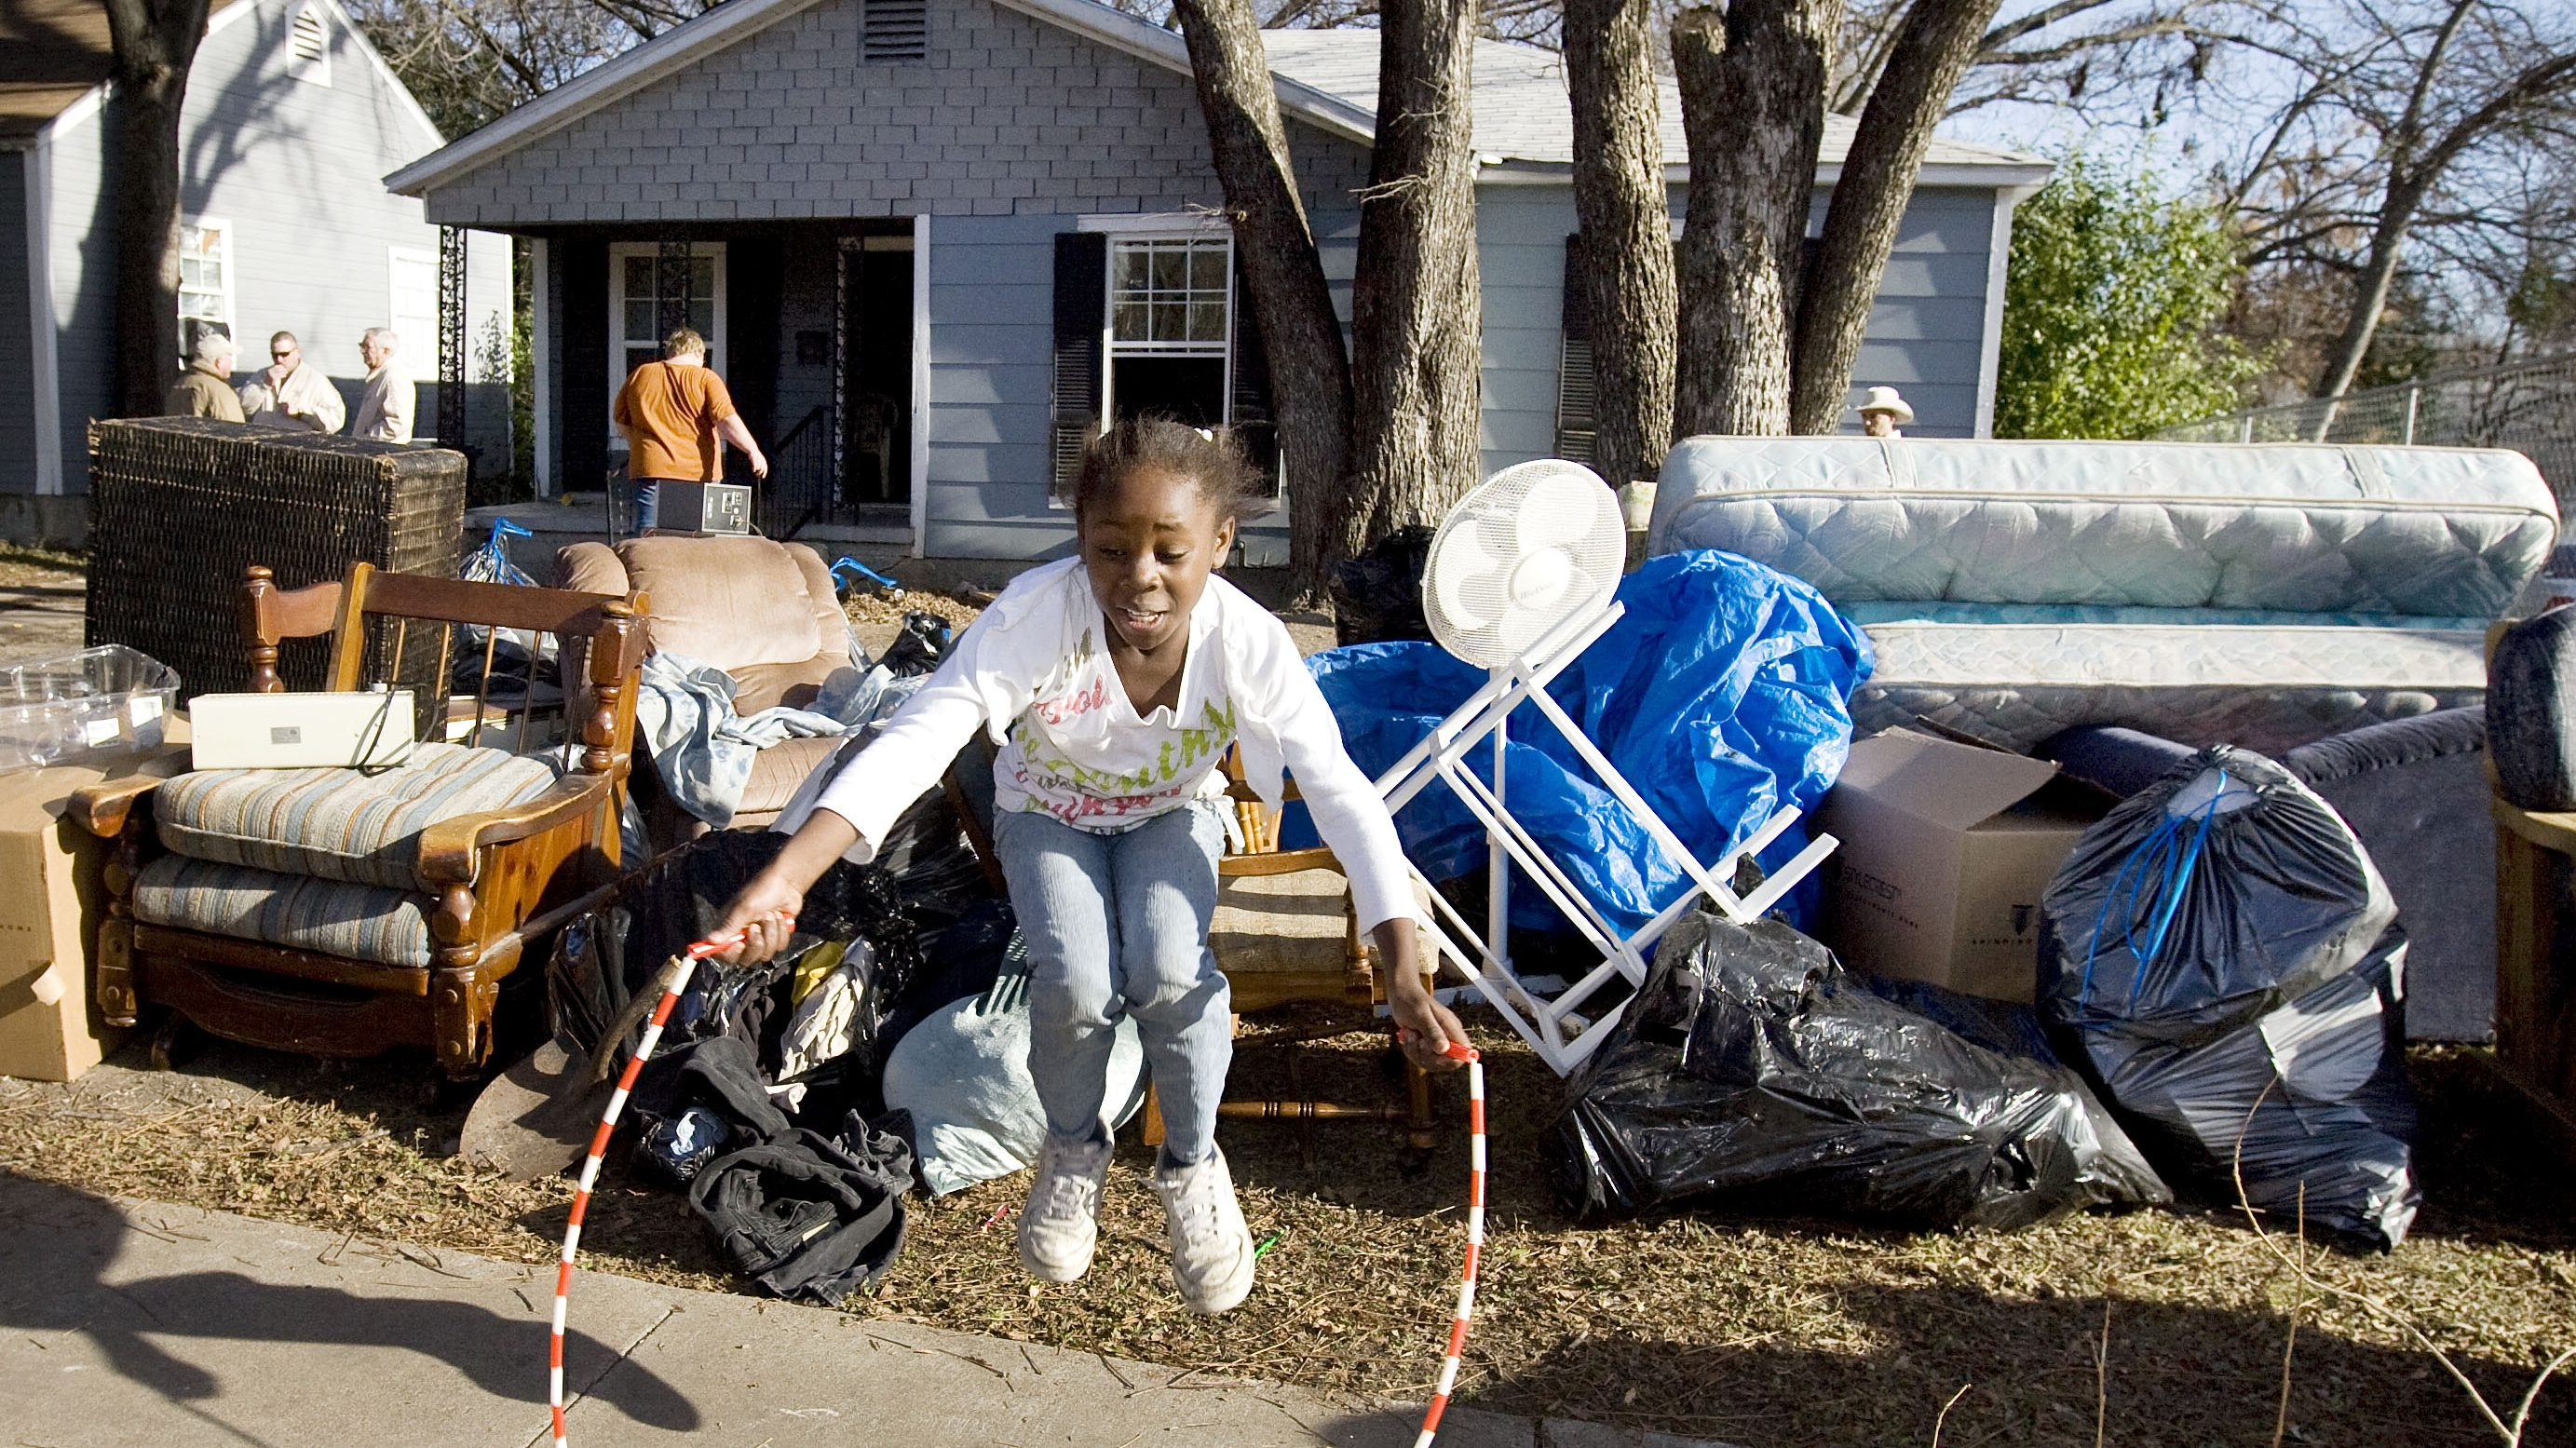 A young girl jumps rope on the sidewalk next to her family's belongings after she, her parents, and her four brothers and sisters, received a court order of eviction that was carried out by McLennan County Deputy Constables in Waco, Texas, December 31, 2008.        (UNITED STATES) - GM1E5110B5P01